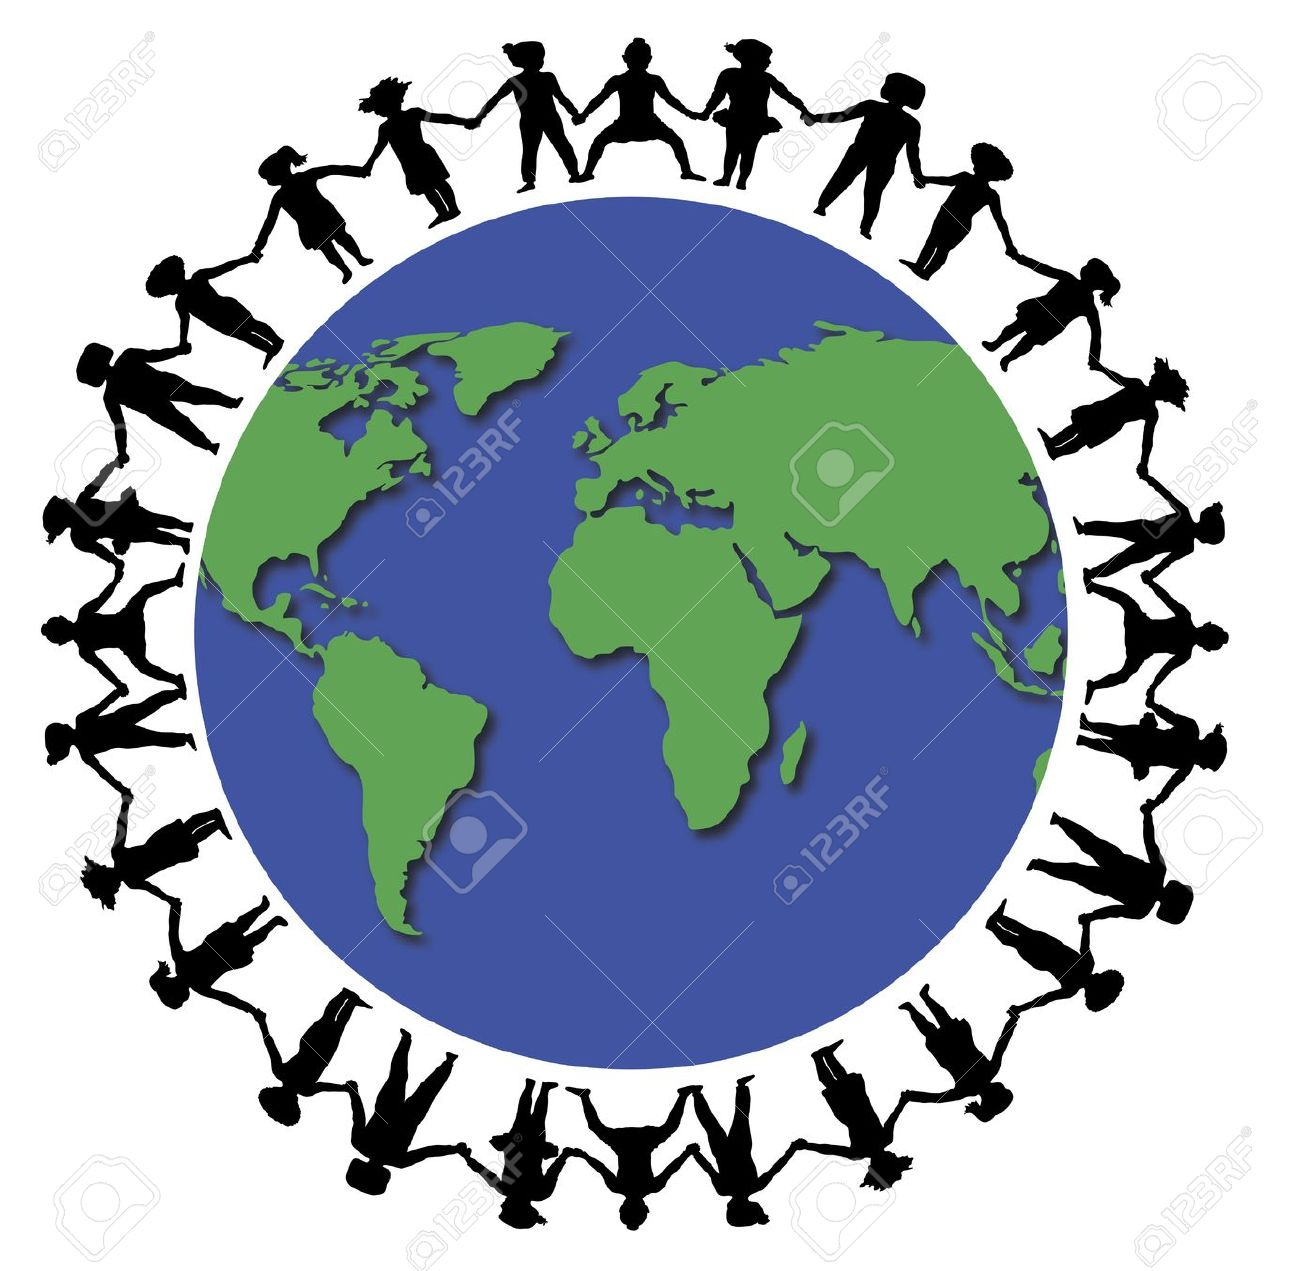 Illustration Of Children Holding Hands Around The World Stock.